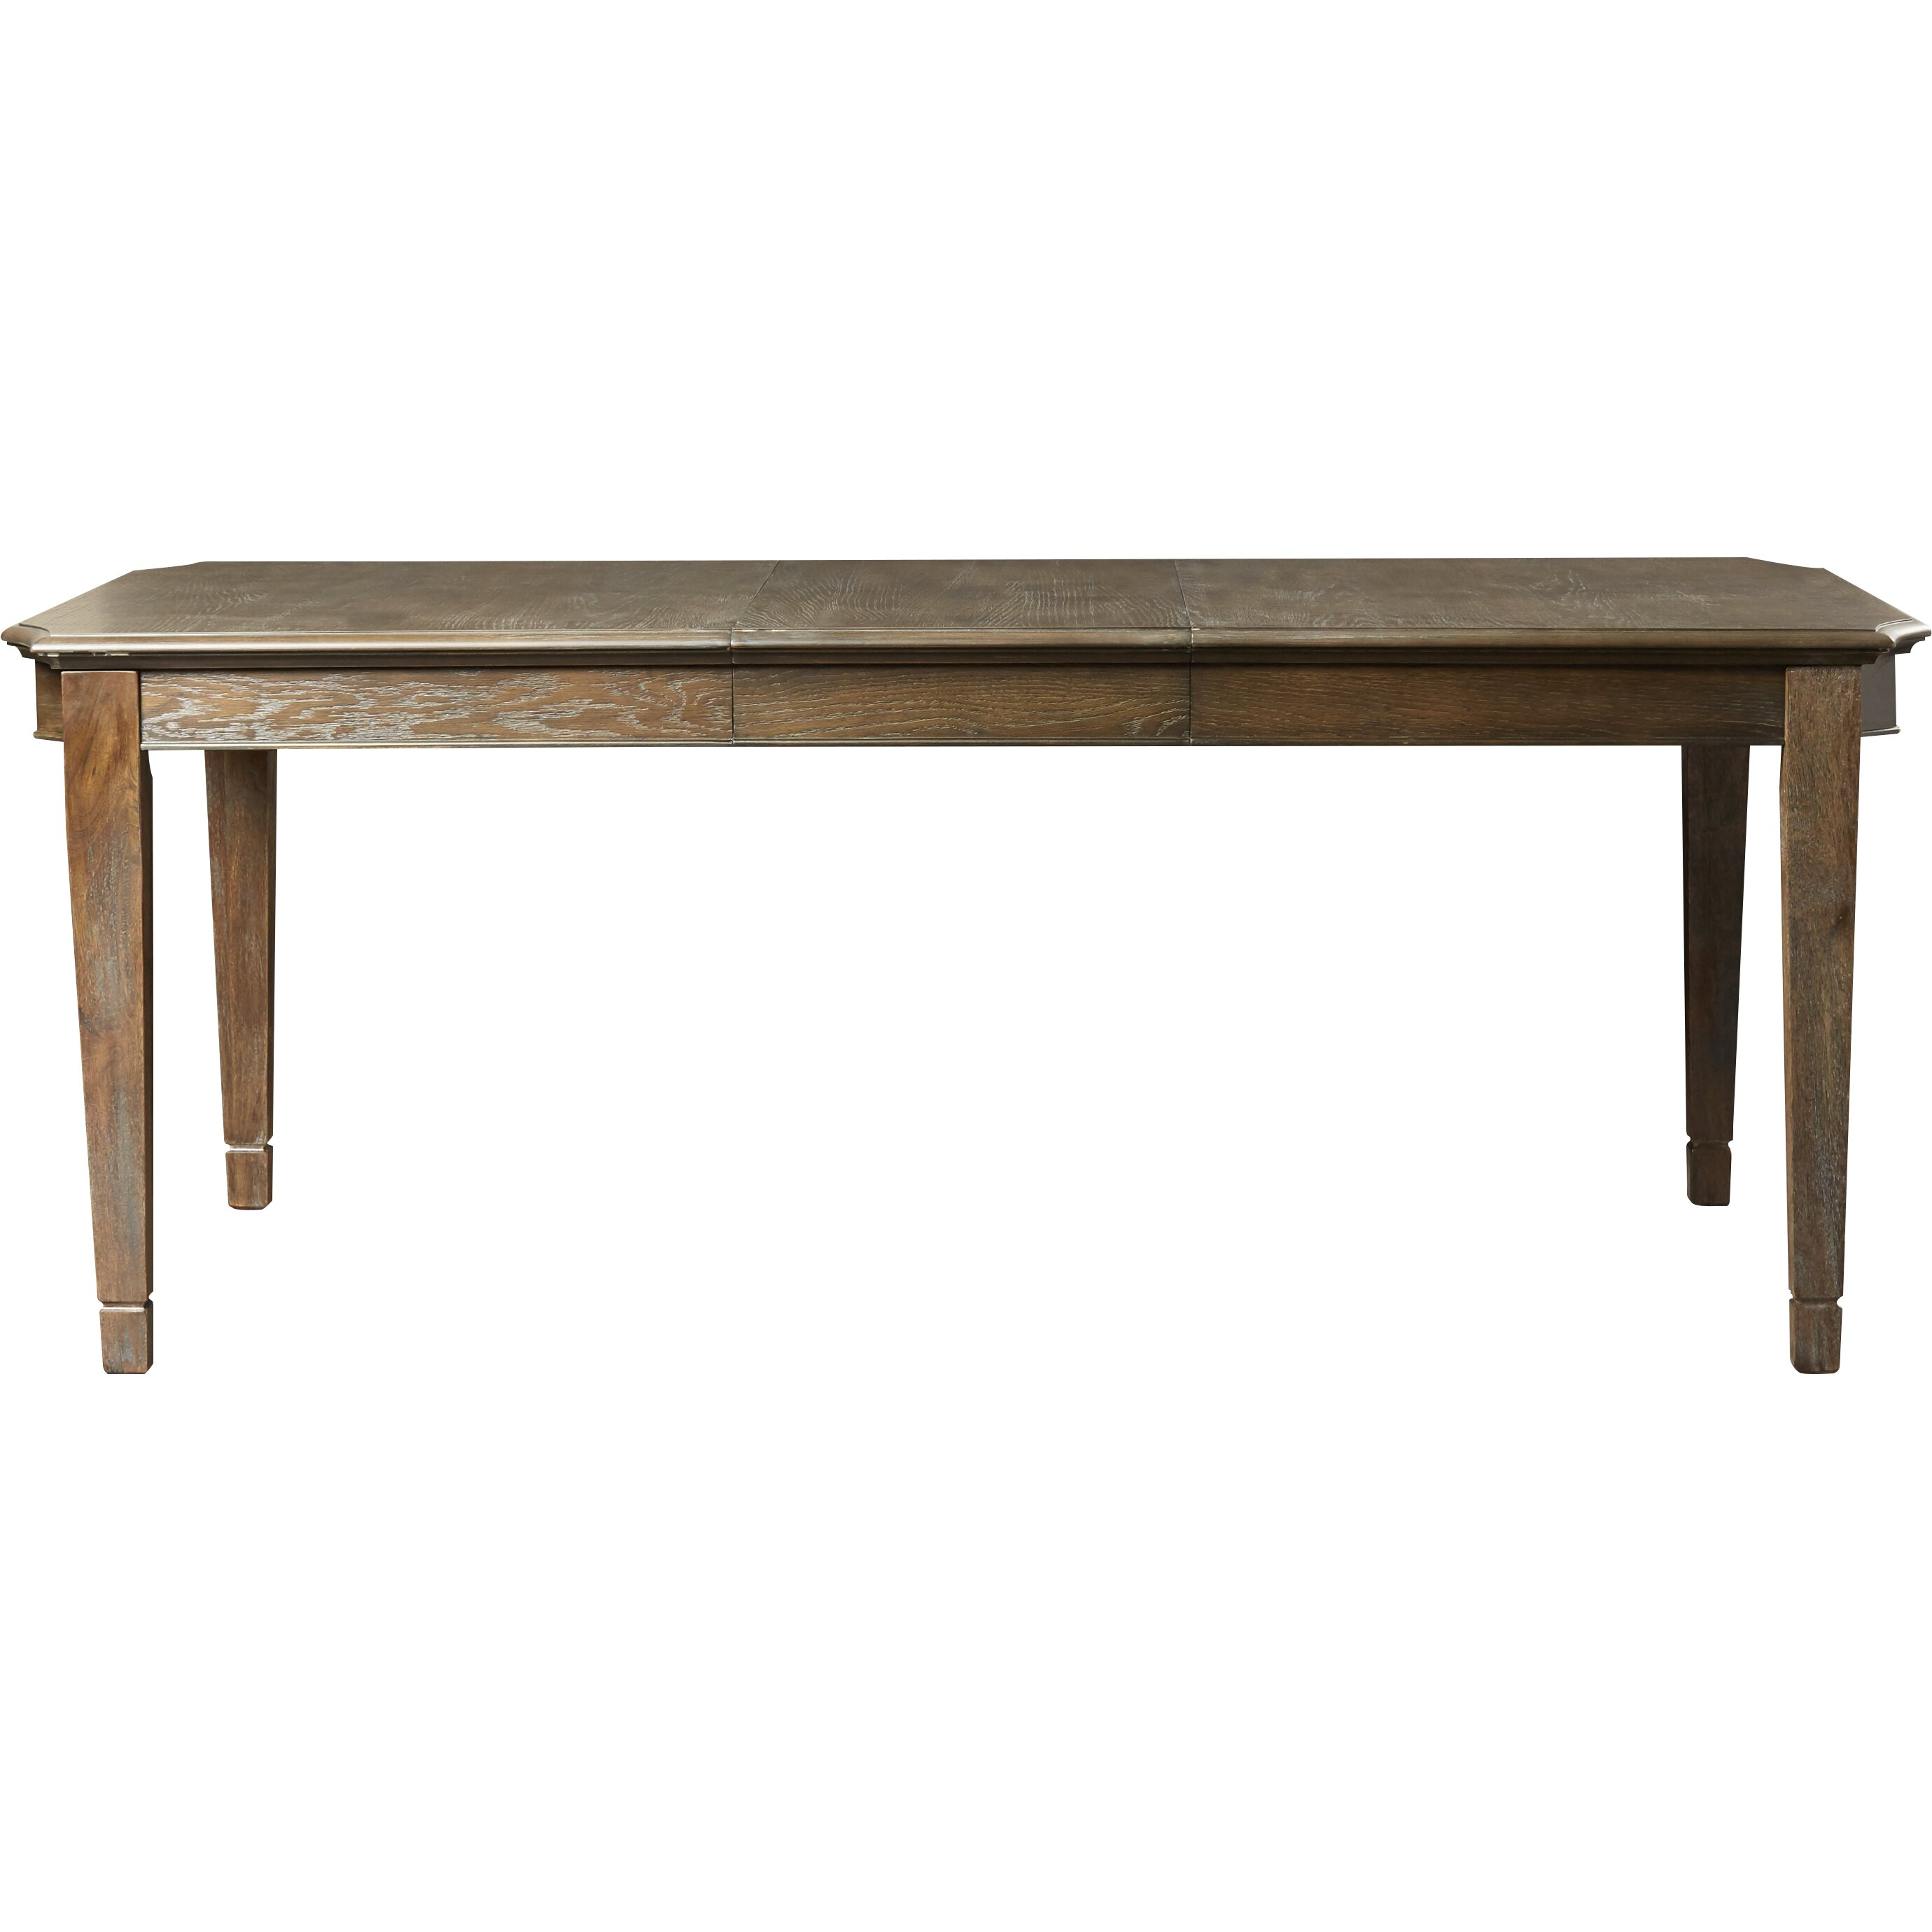 Oliver Extendable Dining Table Wayfair : Oliver Extendable Dining Table DBHC8091 from www.wayfair.com size 2760 x 2760 jpeg 399kB